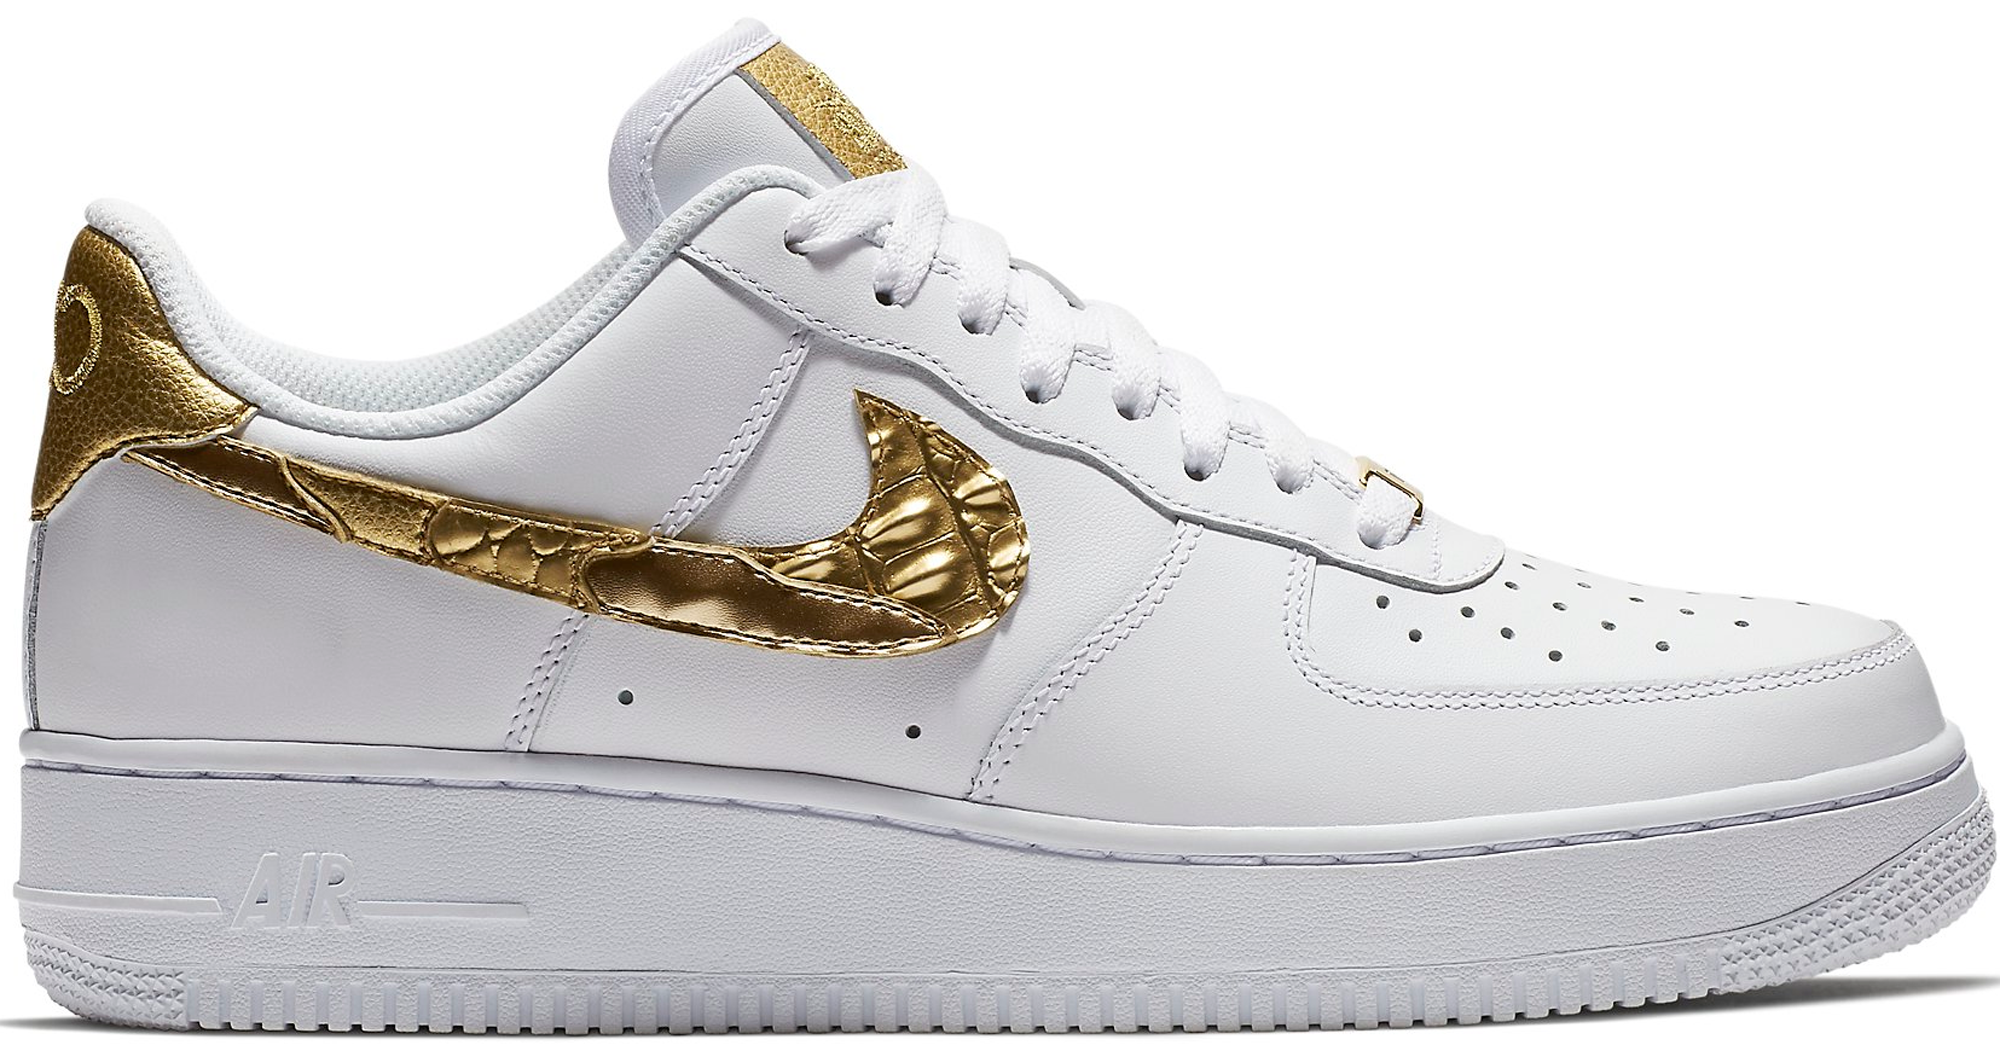 Rechazo Vislumbrar Benigno  Nike Air Force 1 Low CR7 Golden Patchwork - StockX News